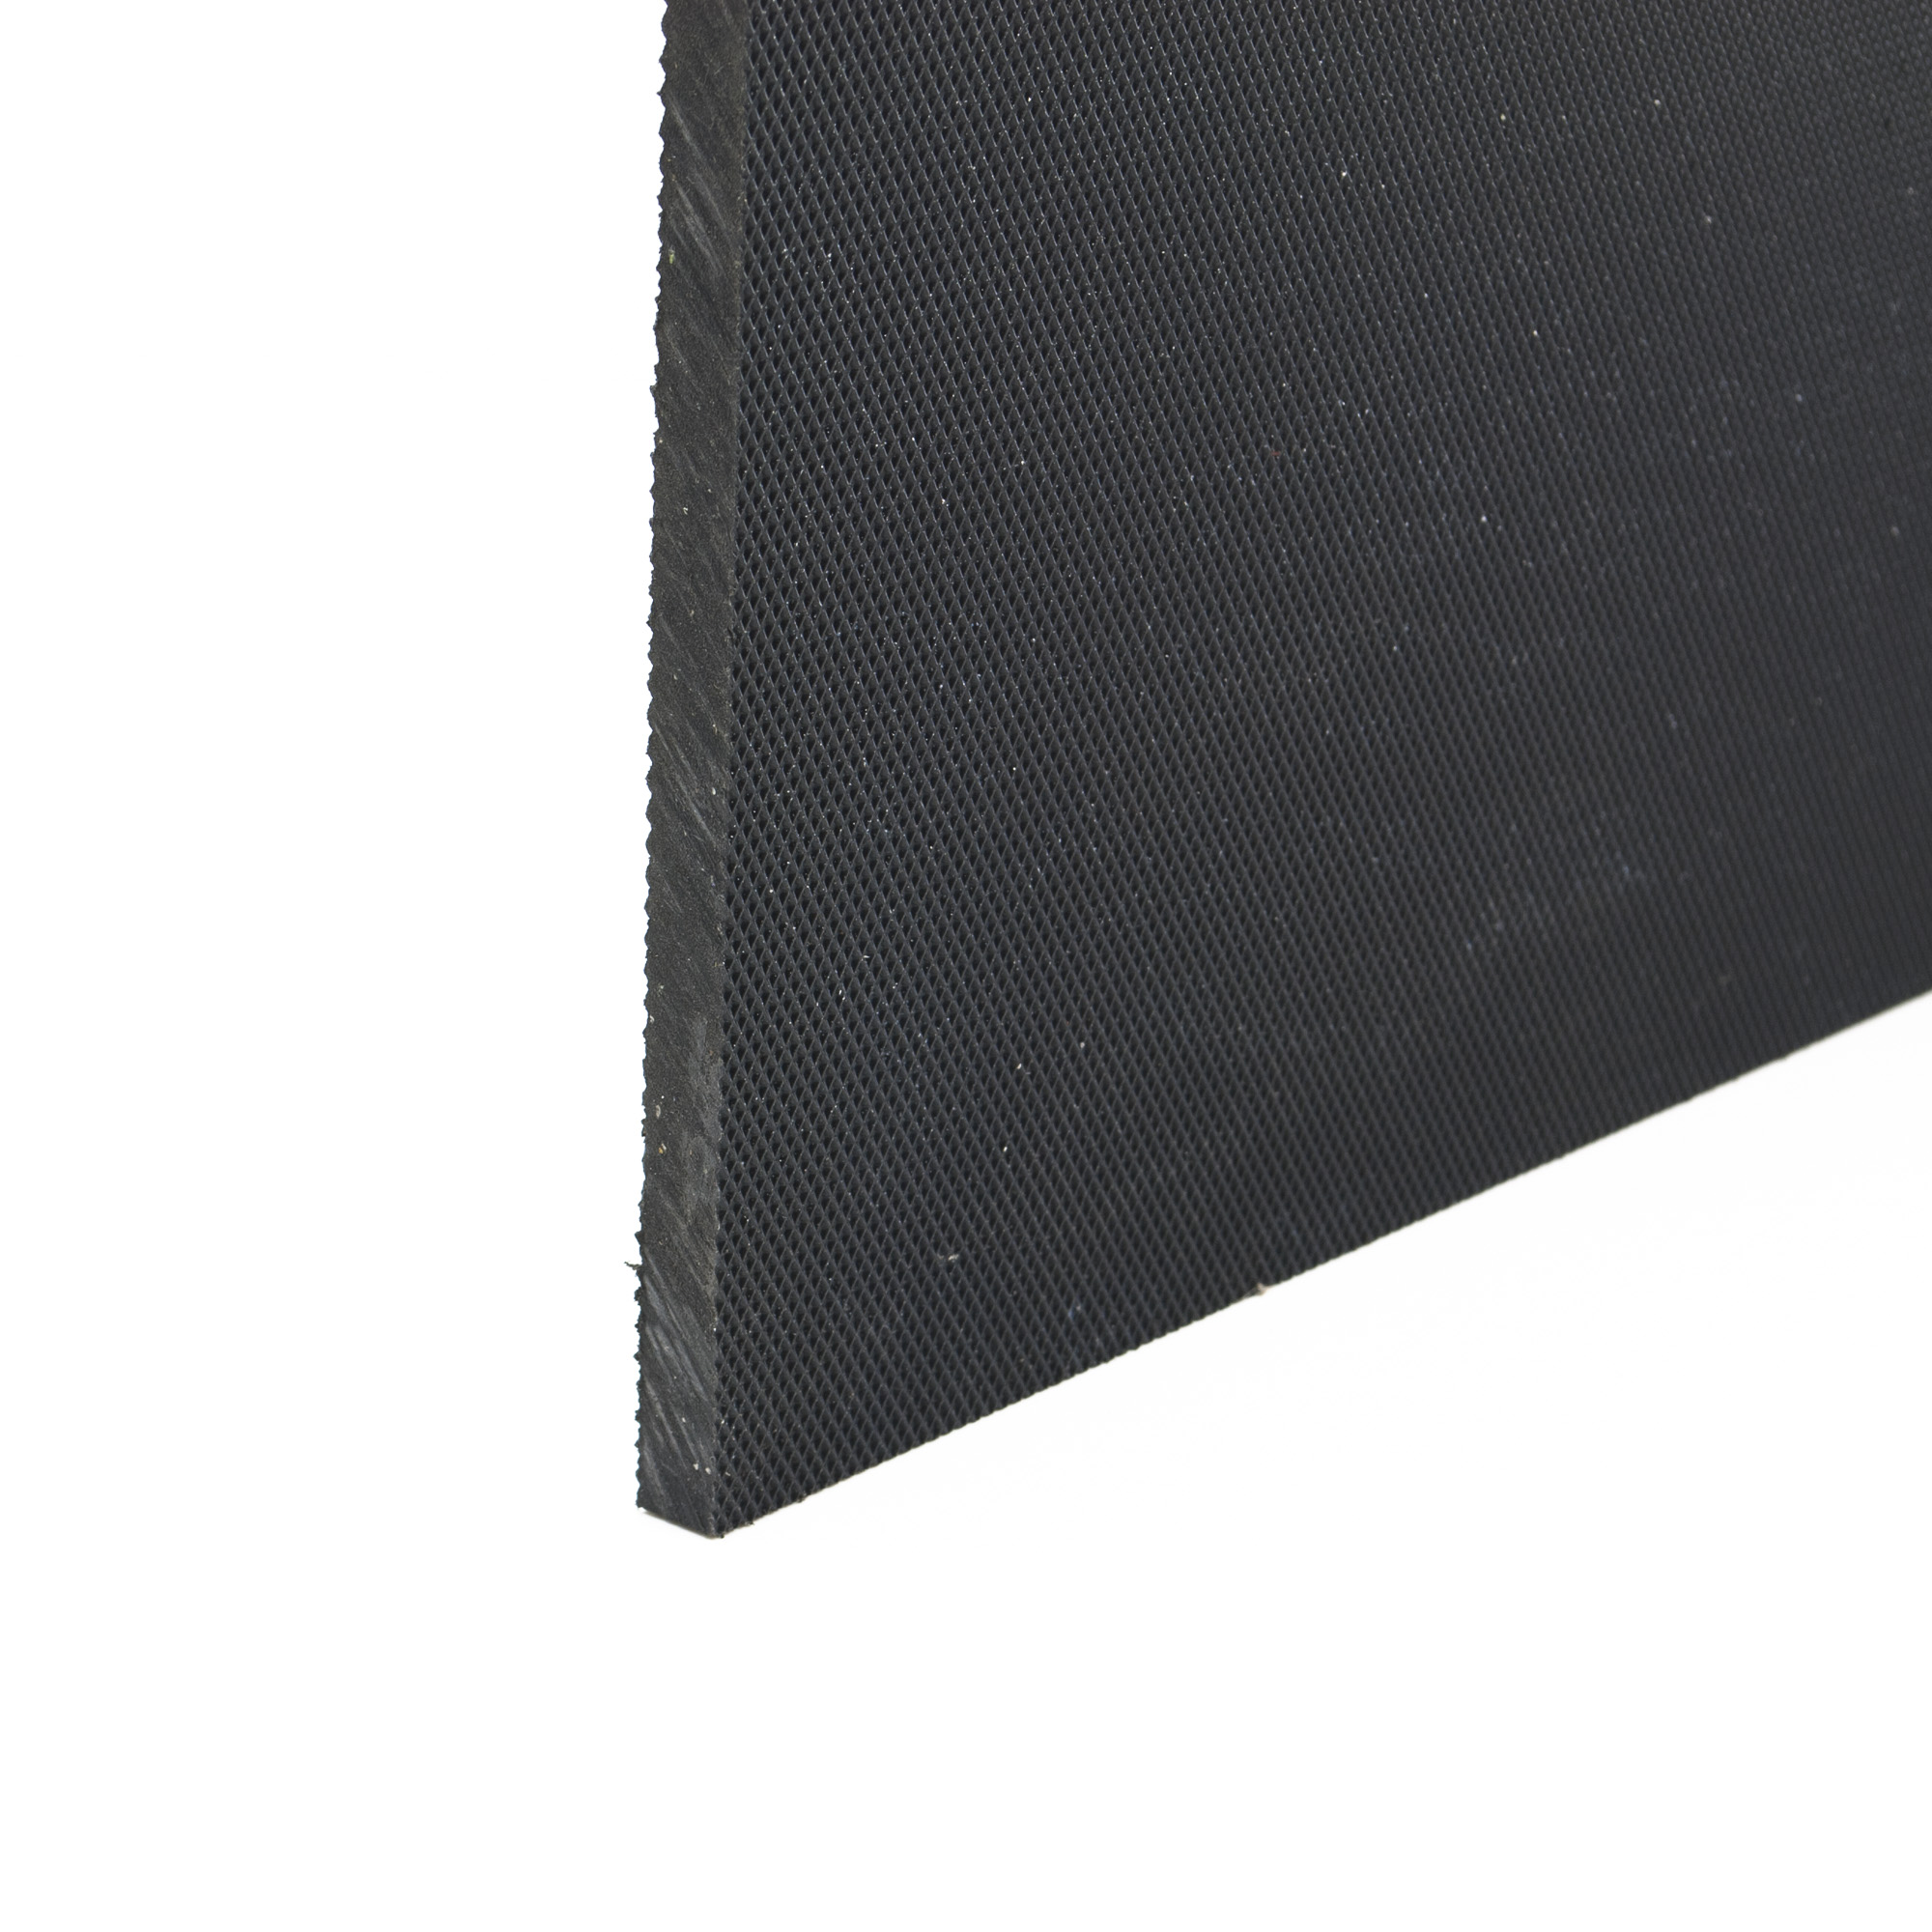 Stokbord - Black LDPE Sheet